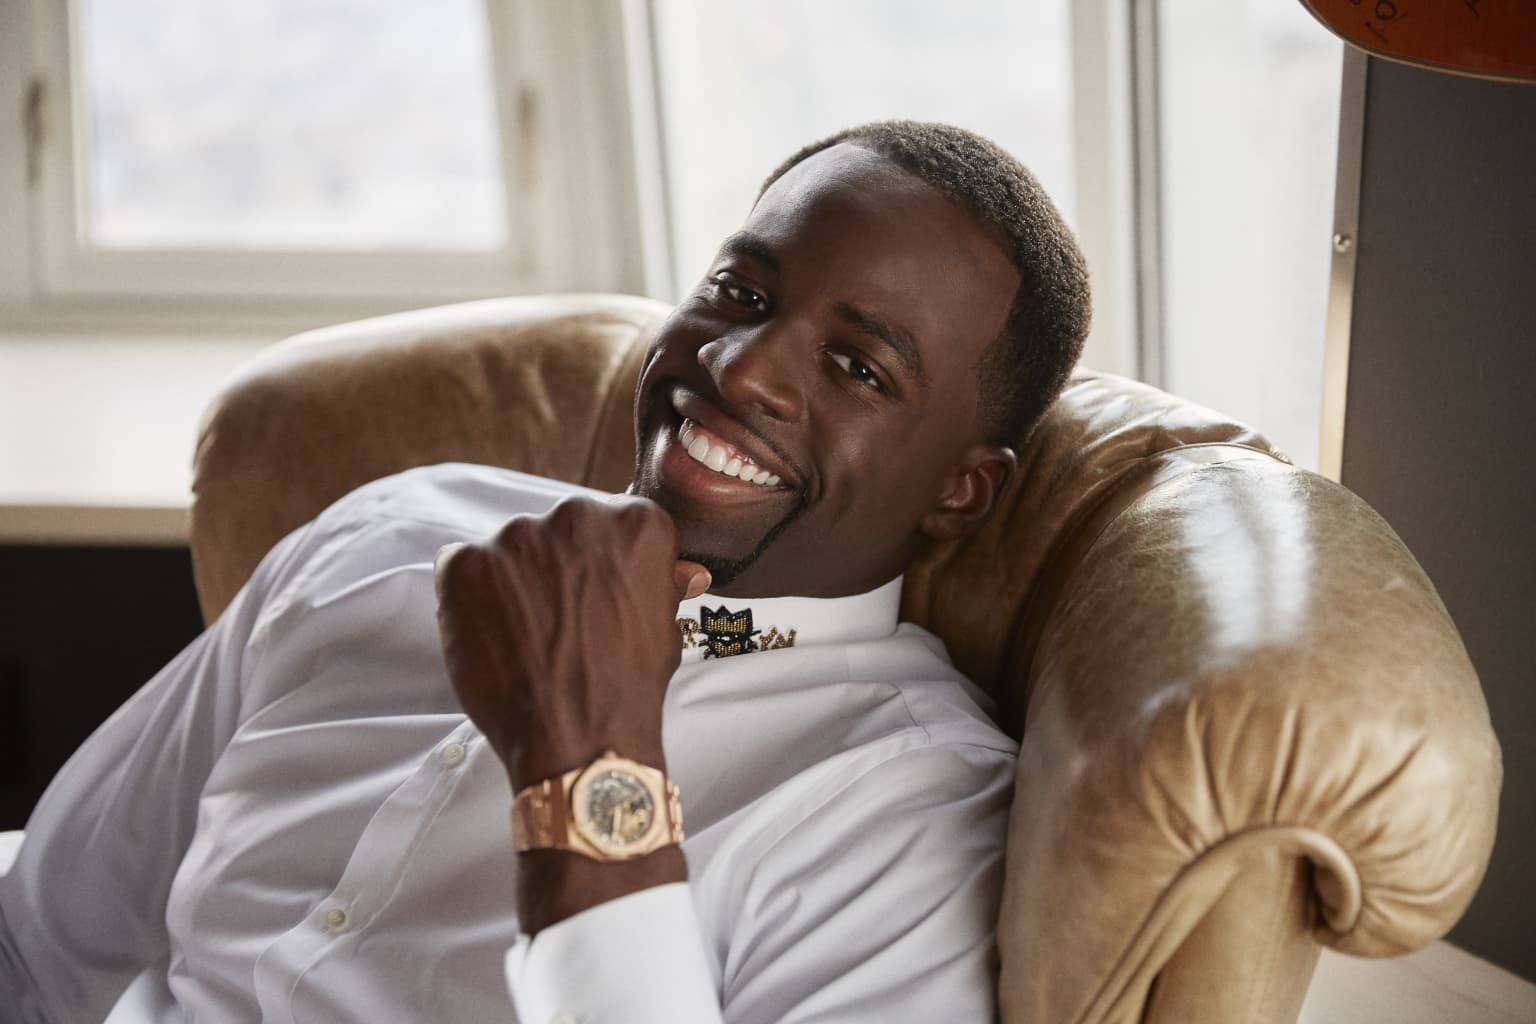 Draymond Green for GQ